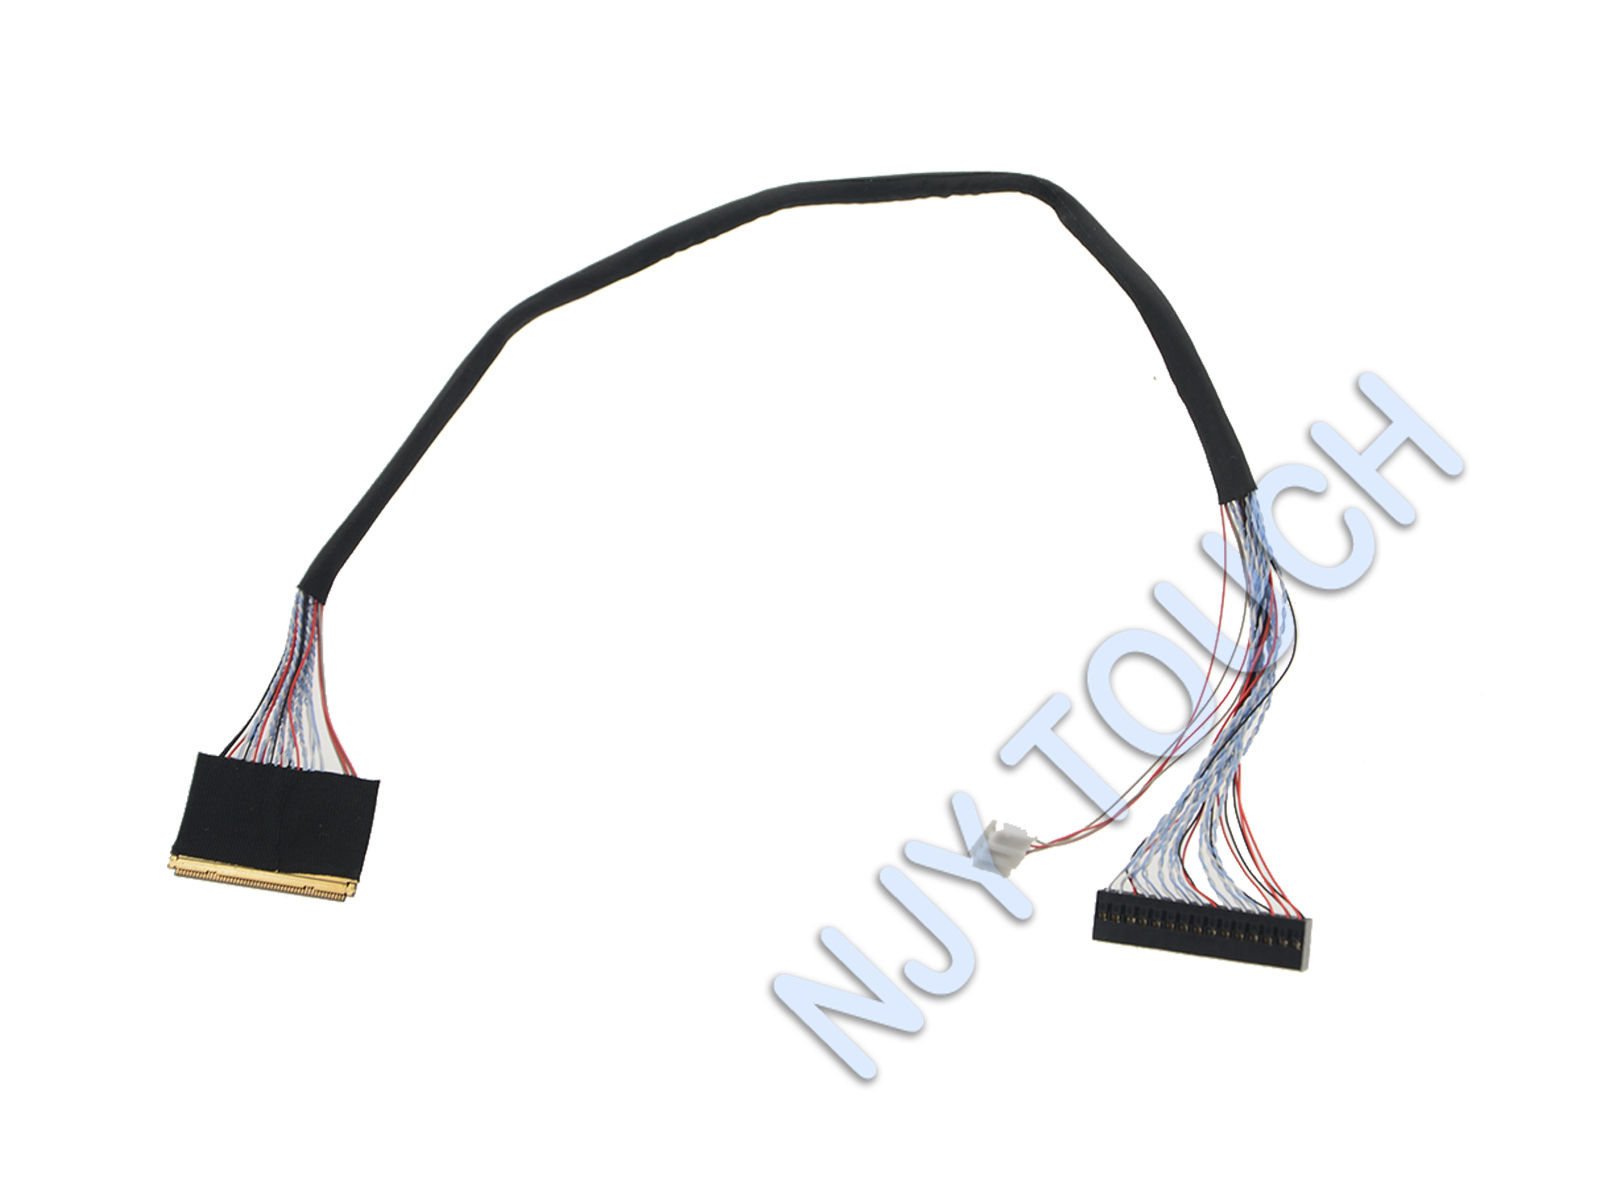 LVDS LED Cable For B101UAN02.1 B101UAN01 50Pin I-PEX 20455- 050E 2ch 8bit